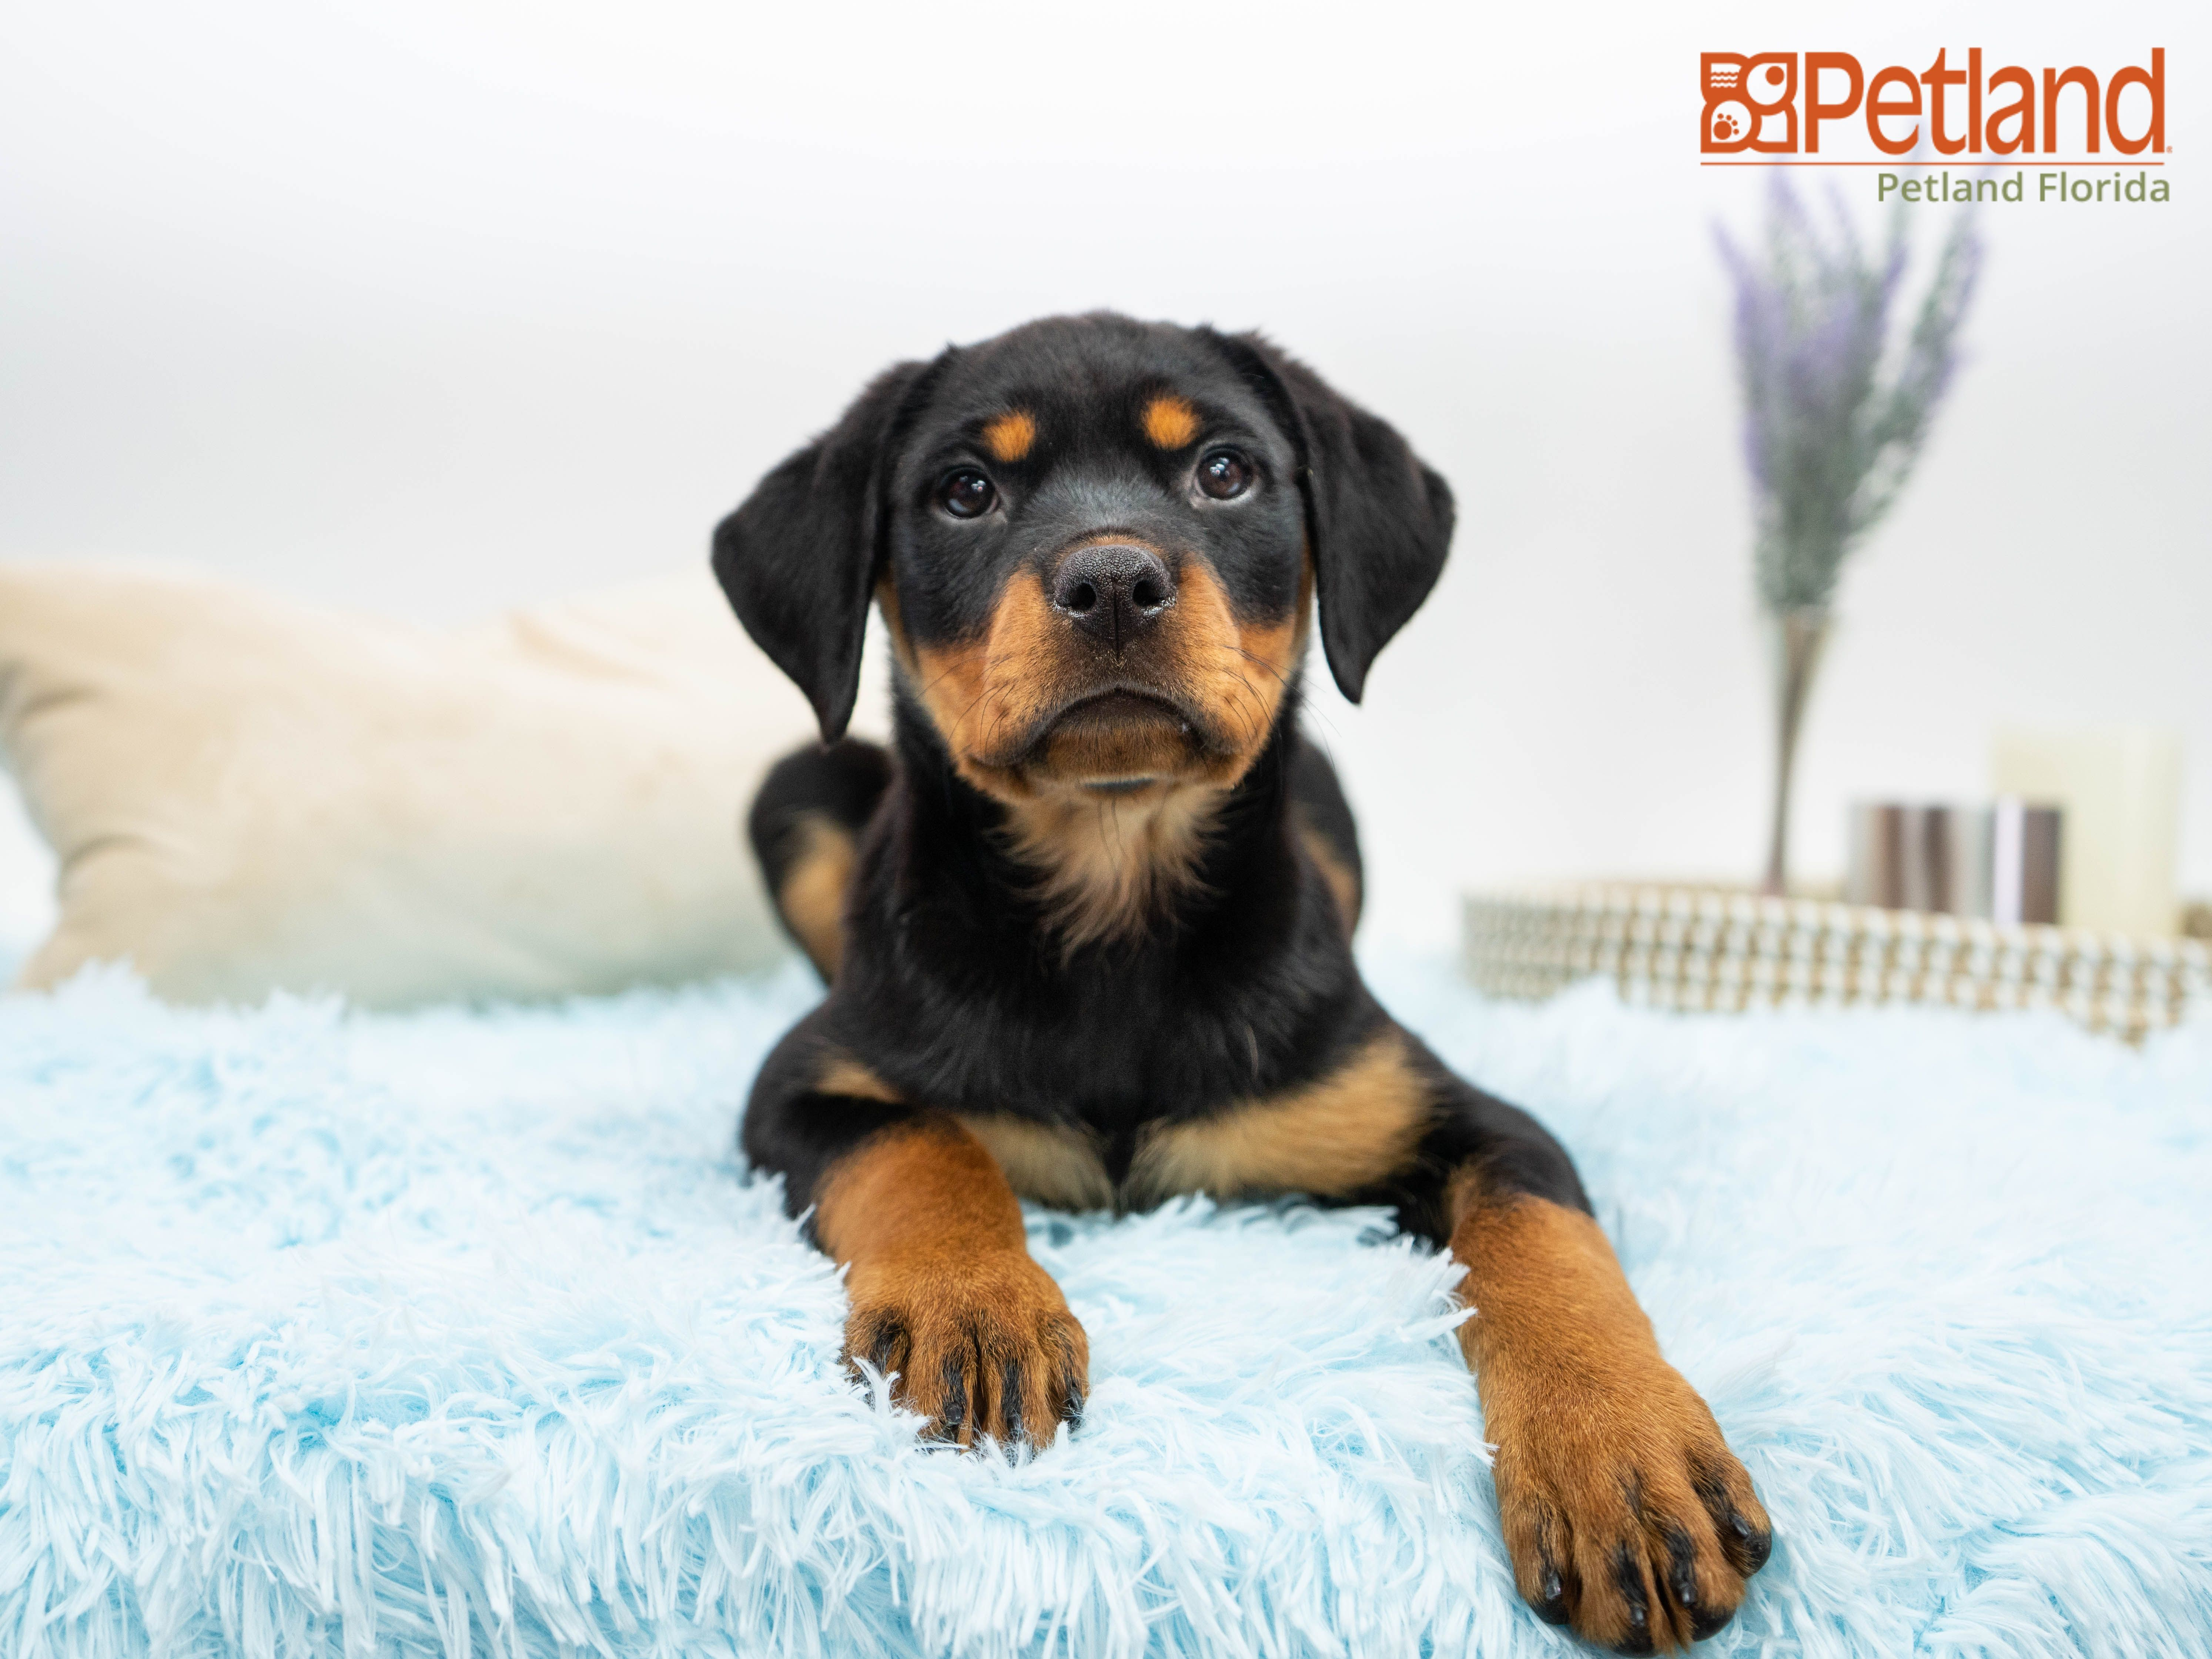 Petland Florida Has Rottweiler Puppies For Sale Check Out All Our Available Puppies Rottweiler Puppy D Dogs And Puppies Puppy Friends Rottweiler Puppies